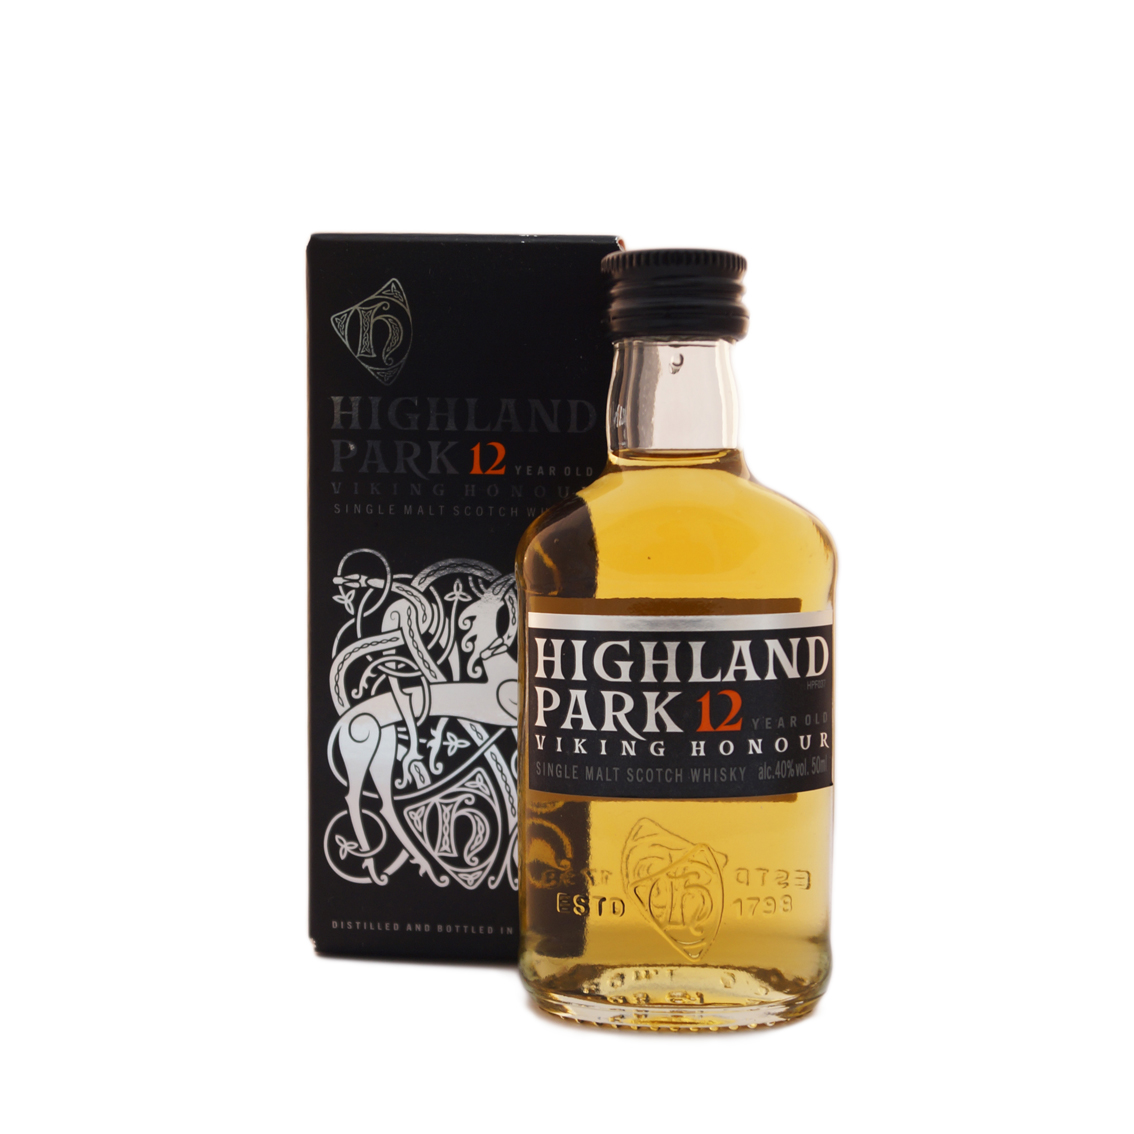 WHISKY-HIGHLAND-PARK-SMSW-12-YO-VIKING-HONOUR